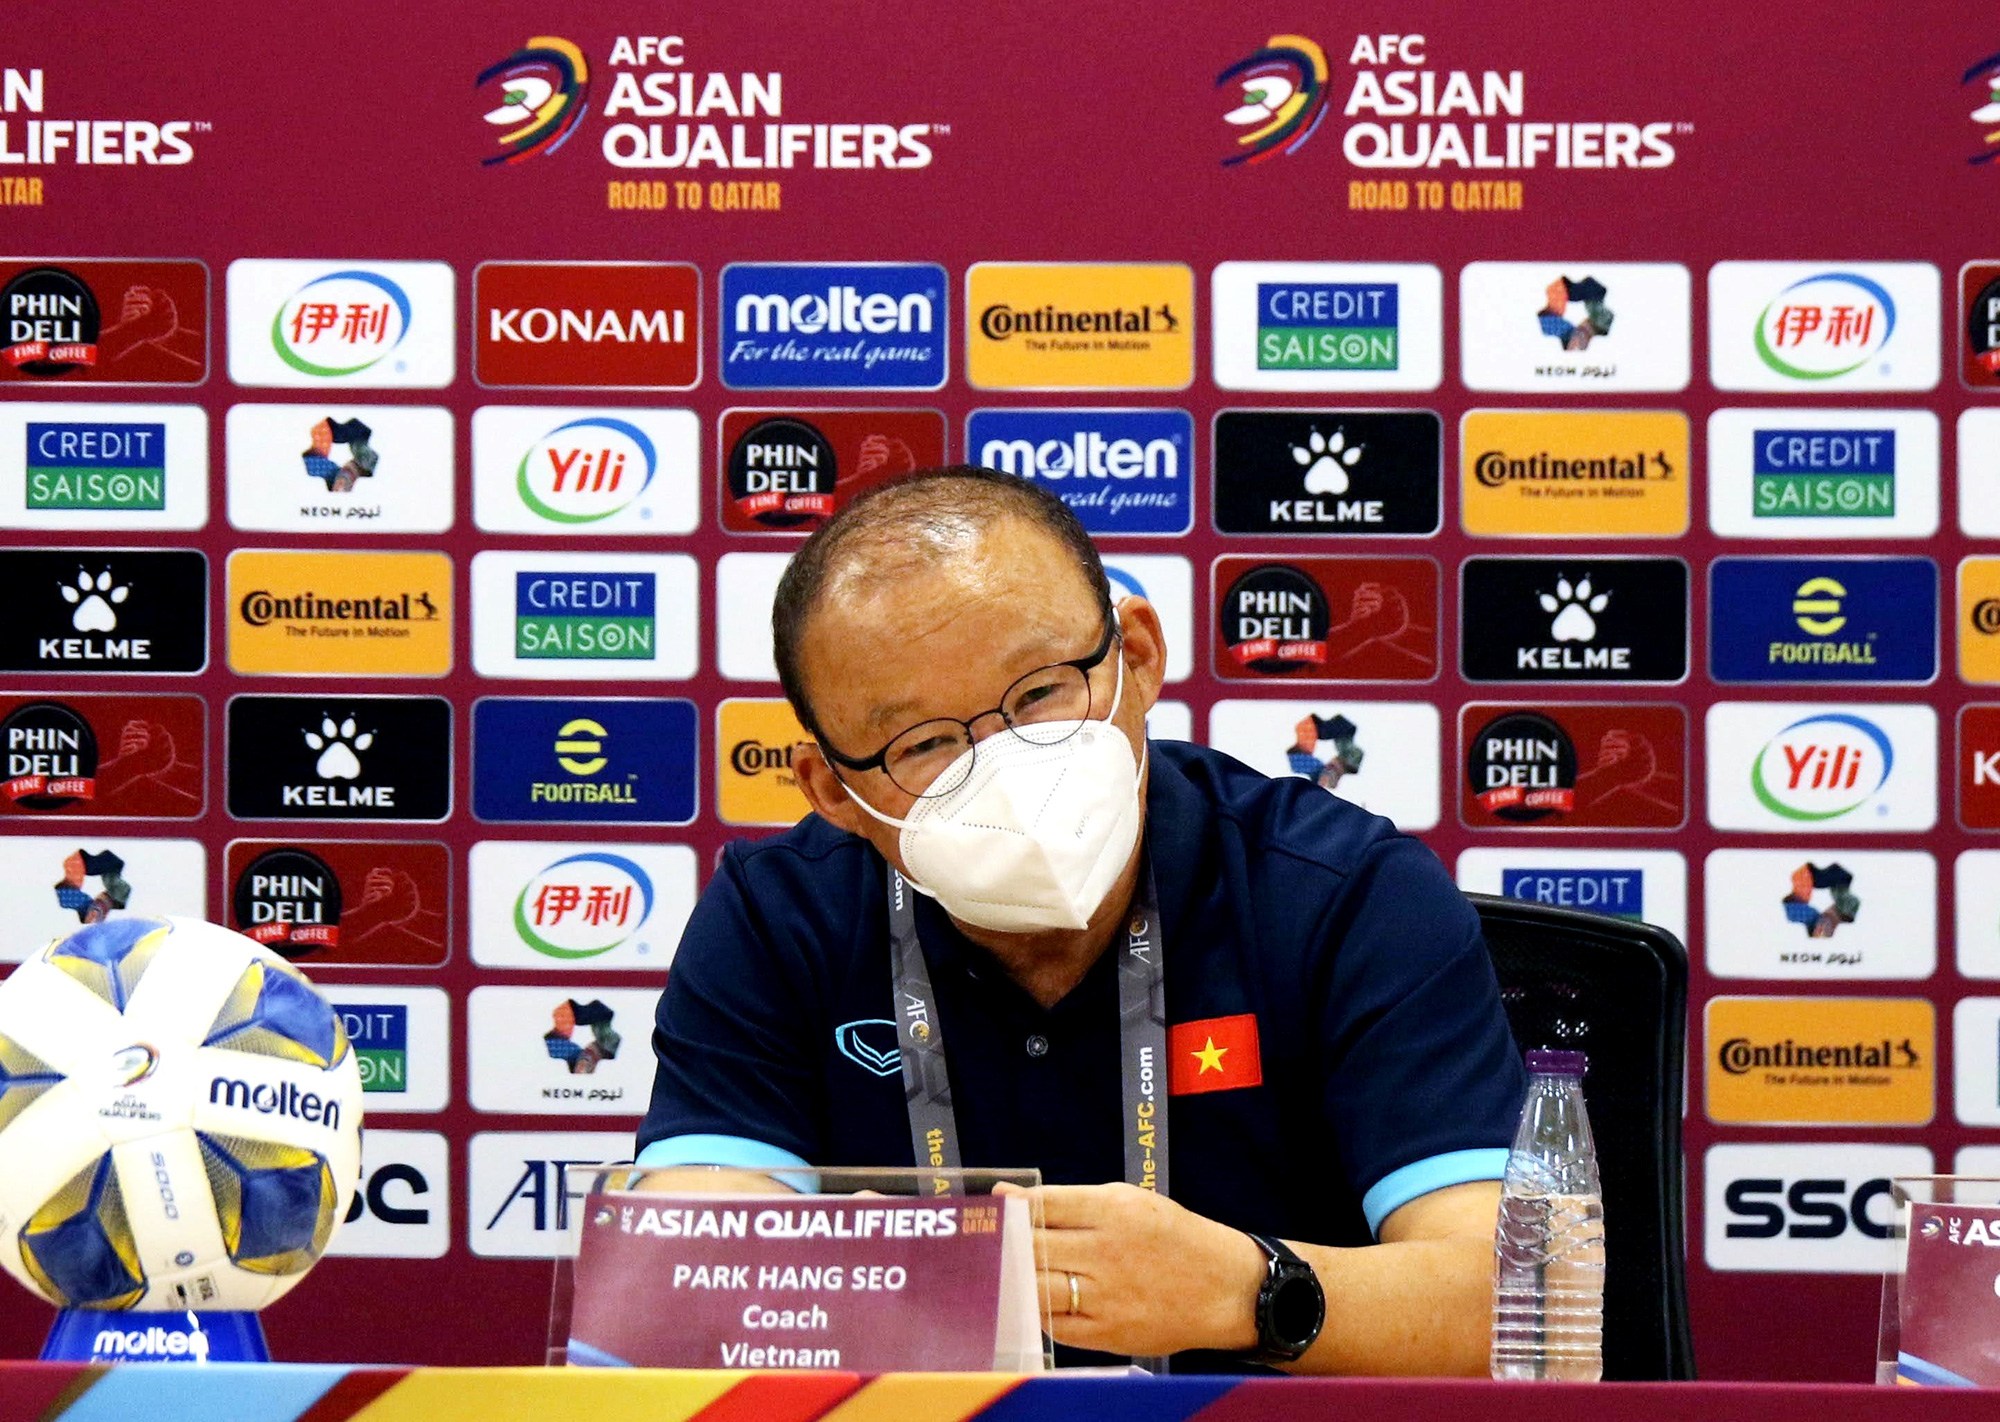 Vietnam's head coach Park Hang Seo speaks at a press conference before their match against Australia in Hanoi, September 6, 2021. Photo: Vietnam Football Federation